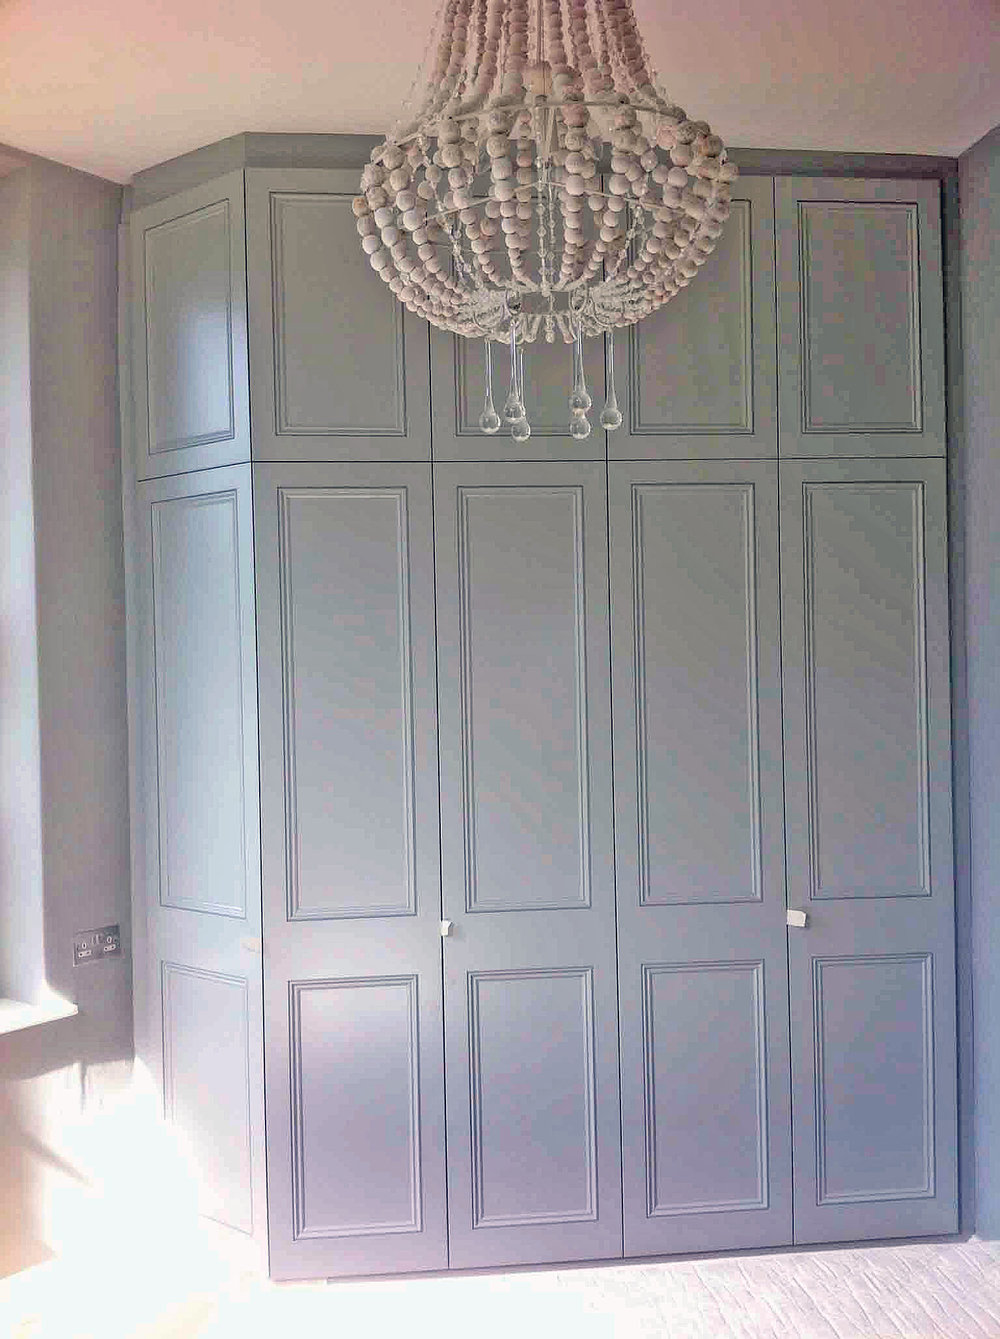 Handcrafted Georgian Style Fitted Wardrobe painted in Farrow and Ball Lamproom Grey